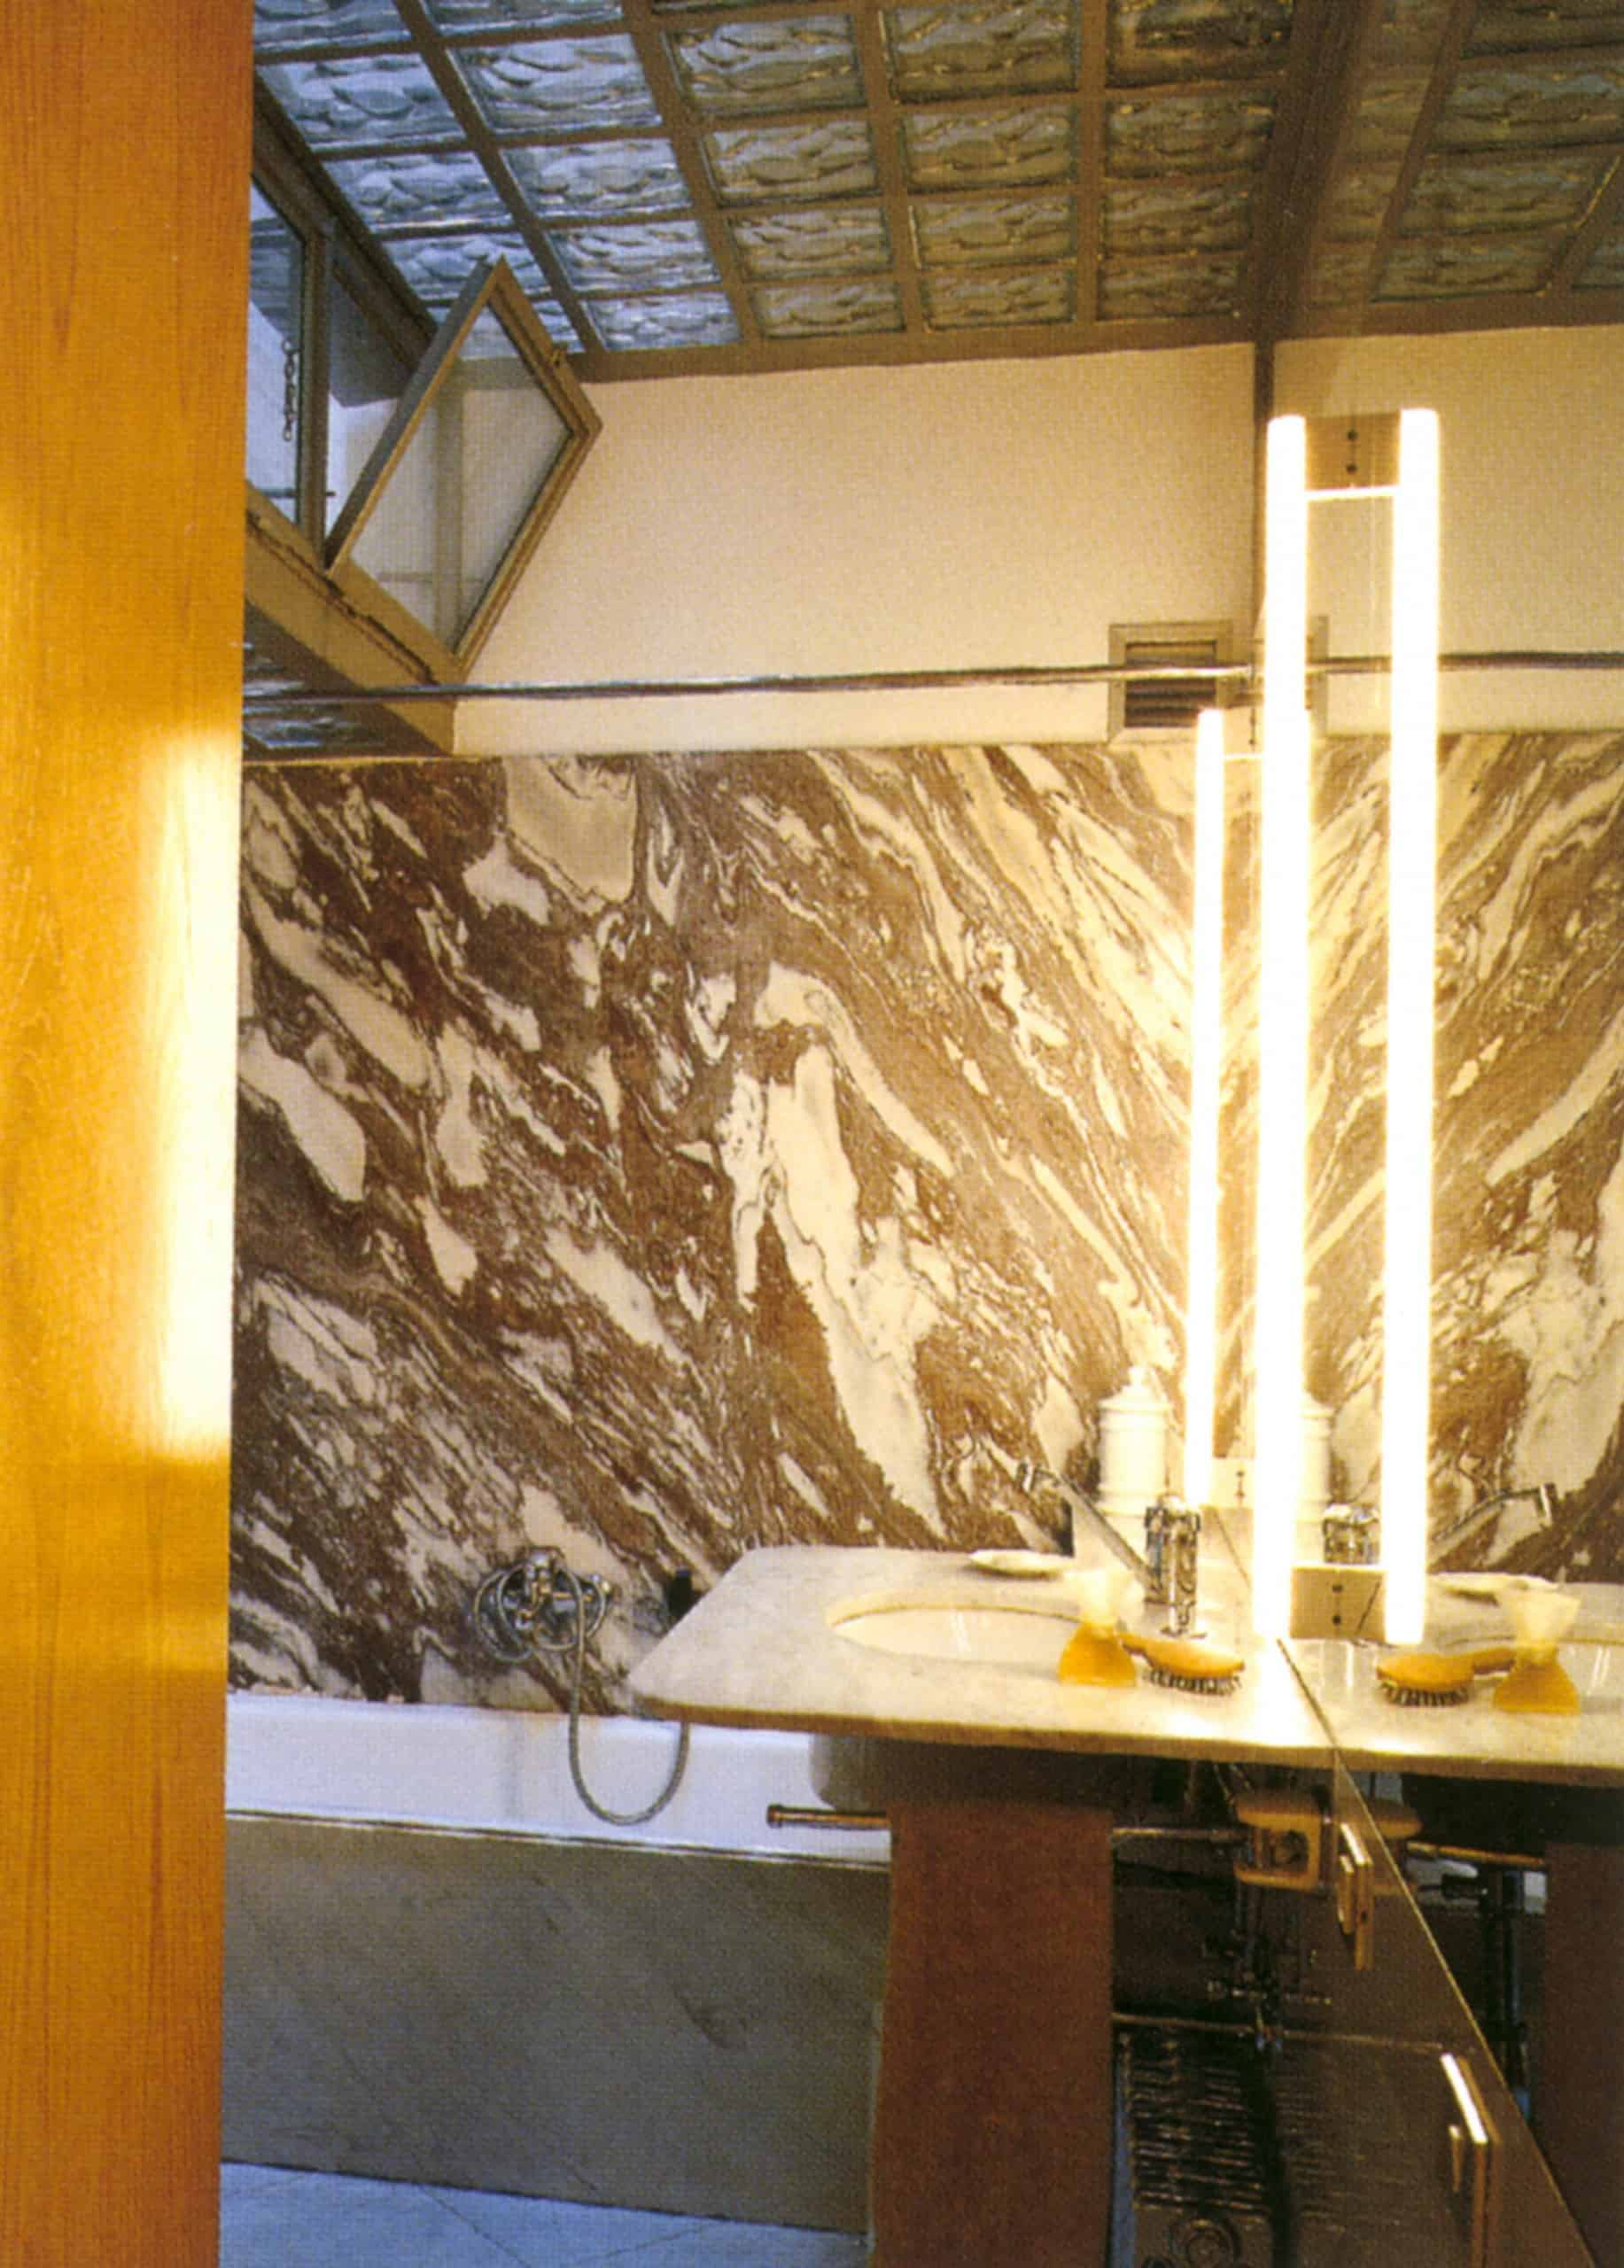 Indoor 3 Architecture Solution Art Deco Interior Style Bathroom Property Upgrade Indoor 3 Architecture Architectural Services Practice London Bordeaux